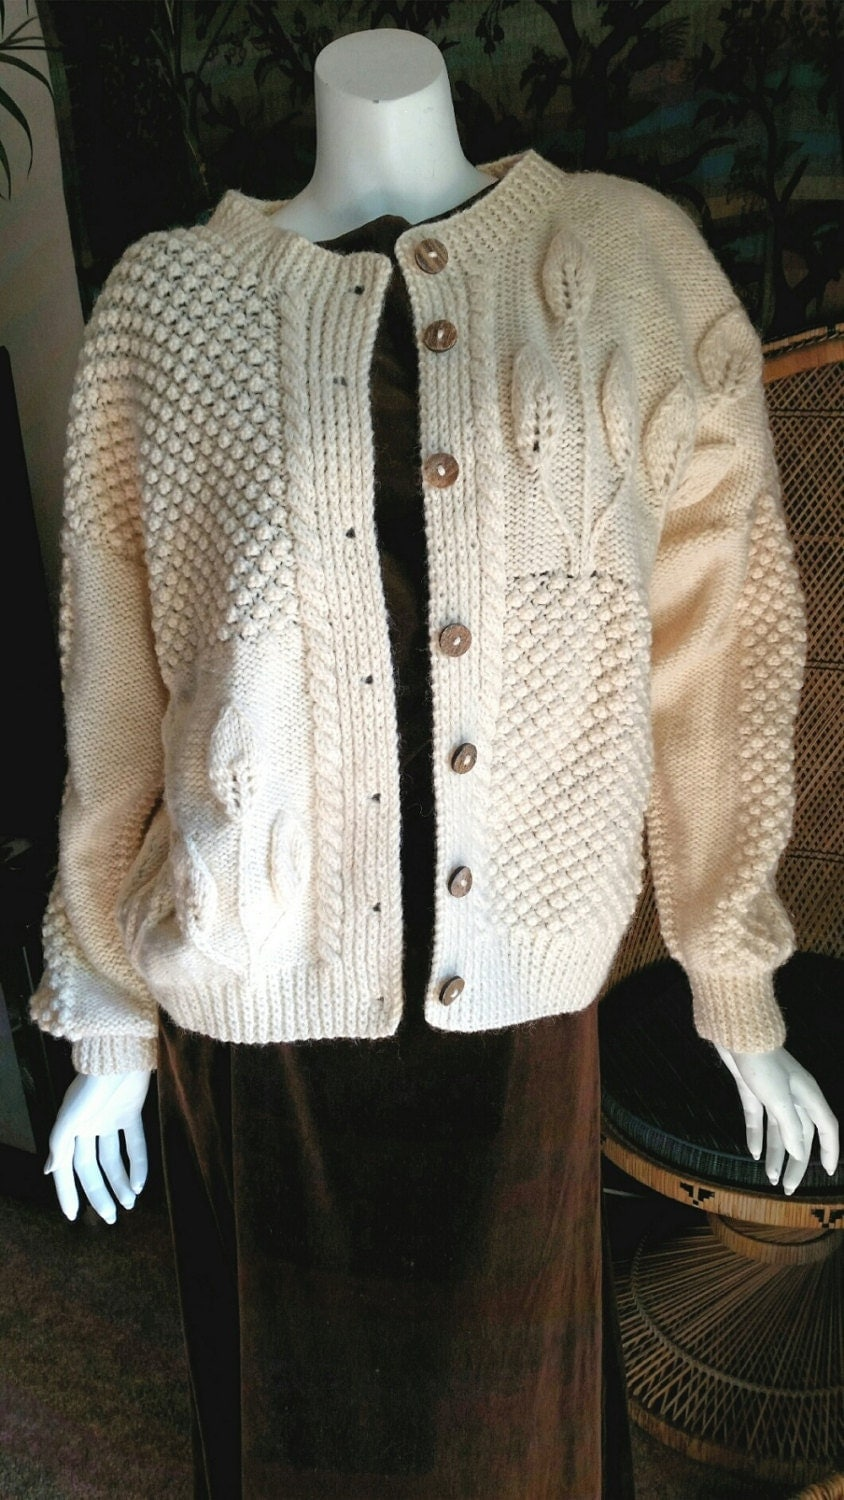 Irish Cable Knit Sweater Patterns : Vintage Irish Wool Cable Knit Sweater with Leaves Millar Made